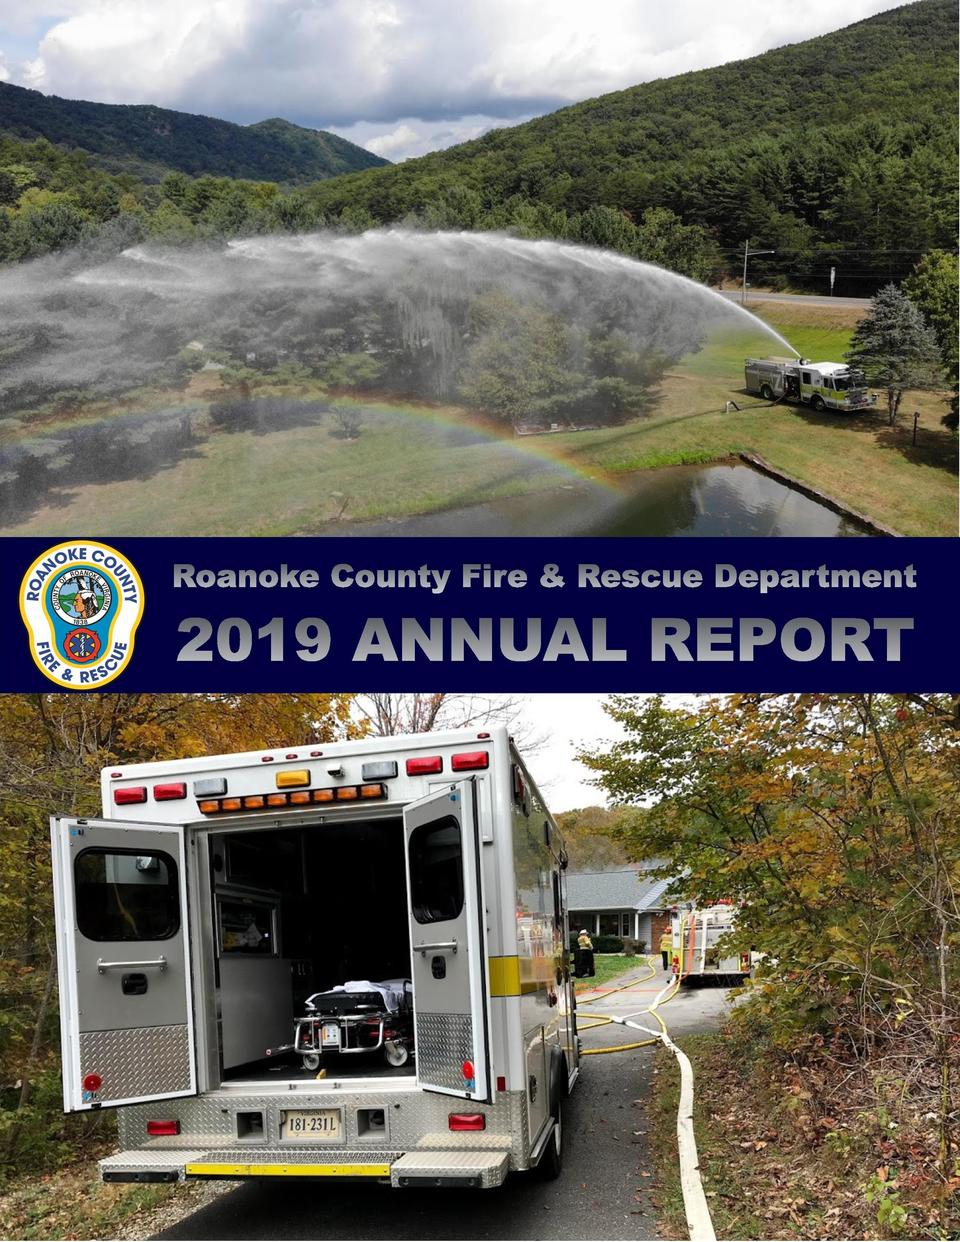 Check in with us  Roanoke County Fire   Rescue 5925 Cove Road Roanoke, VA 24019  20  Roanoke County Fire   Rescue Departme...